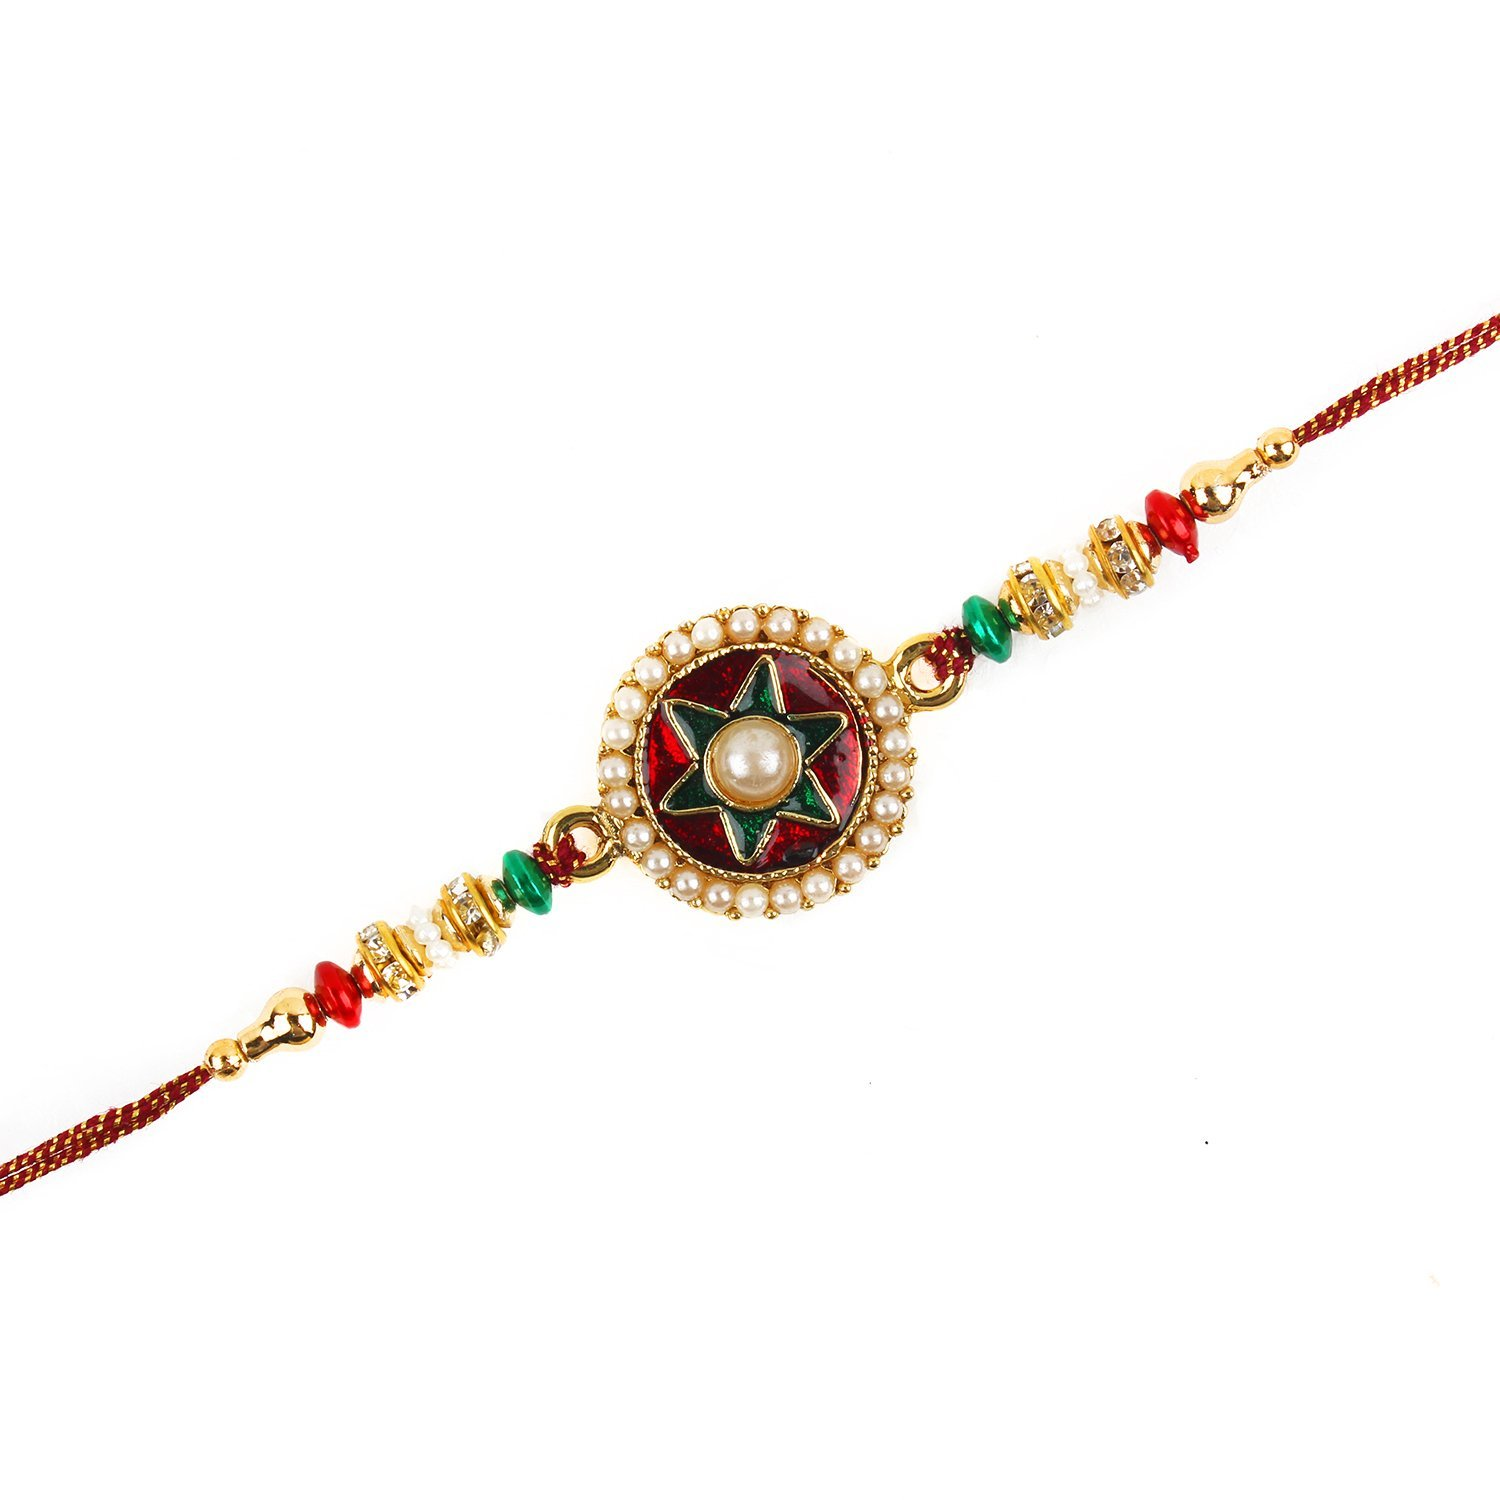 Multi-colored rakhi with traditional design